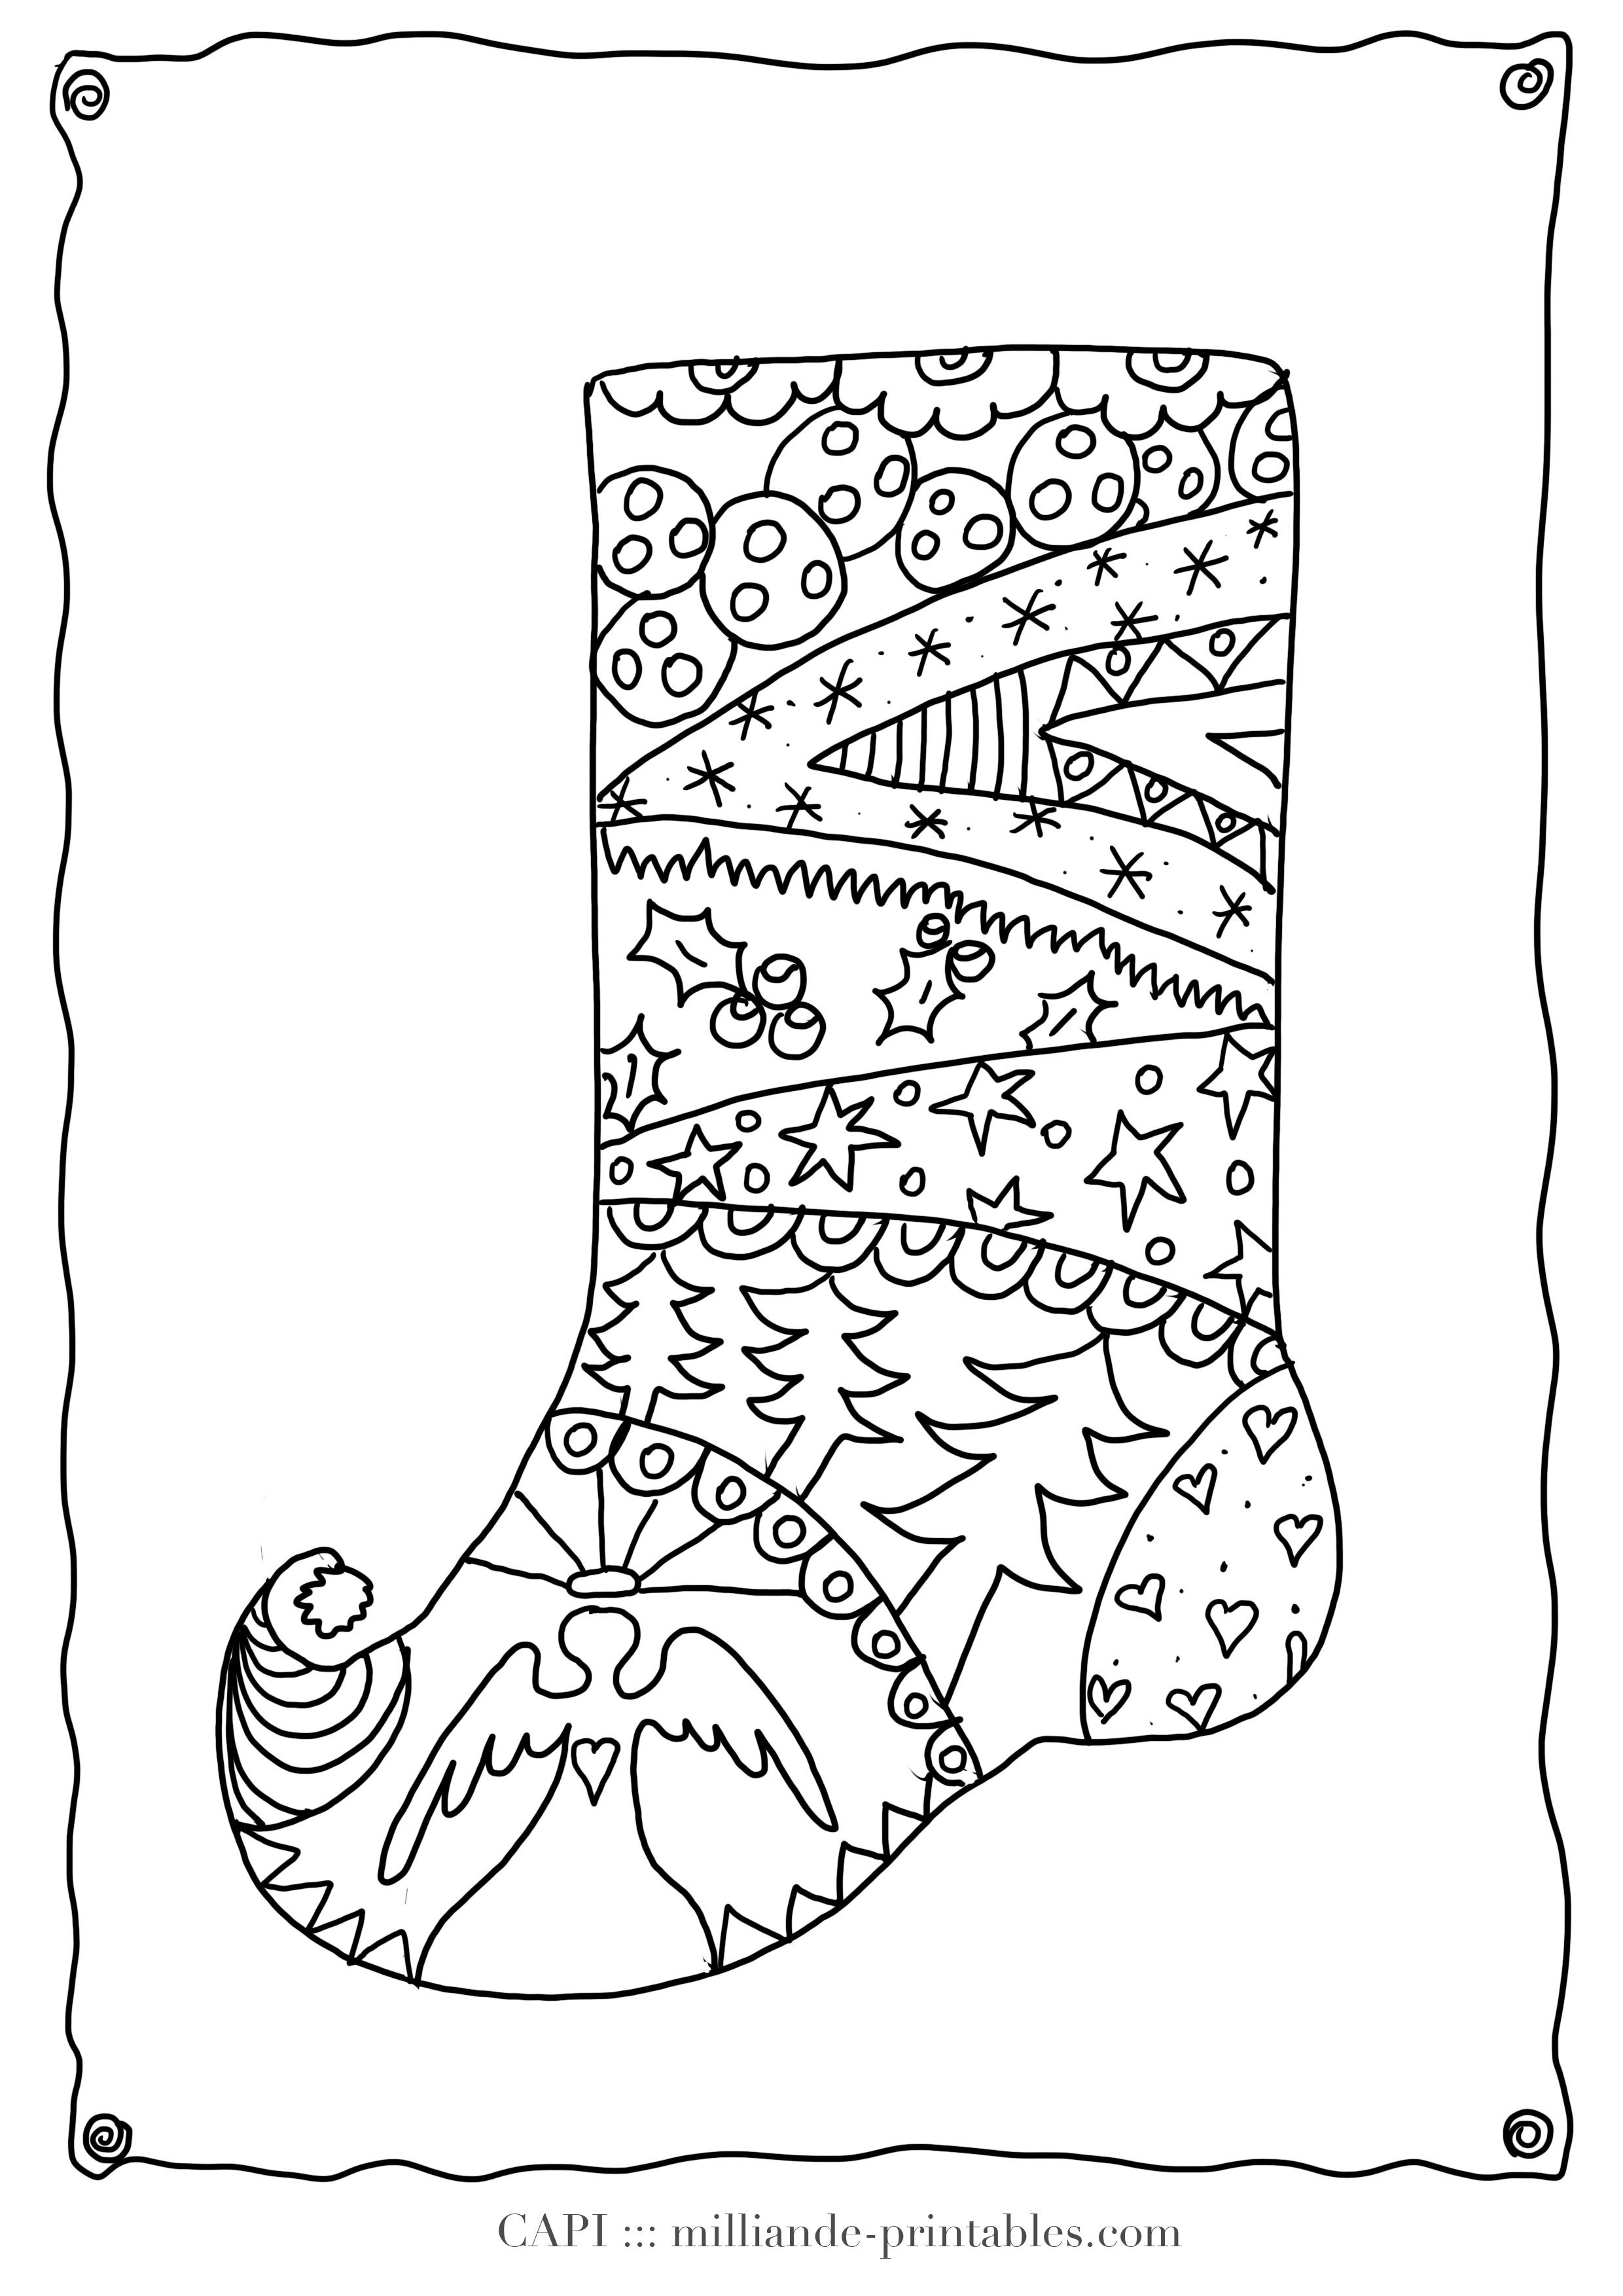 Christmas Stocking To Color Free Printable Christmas Coloring Pages - Free Printable Christmas Coloring Pages And Activities